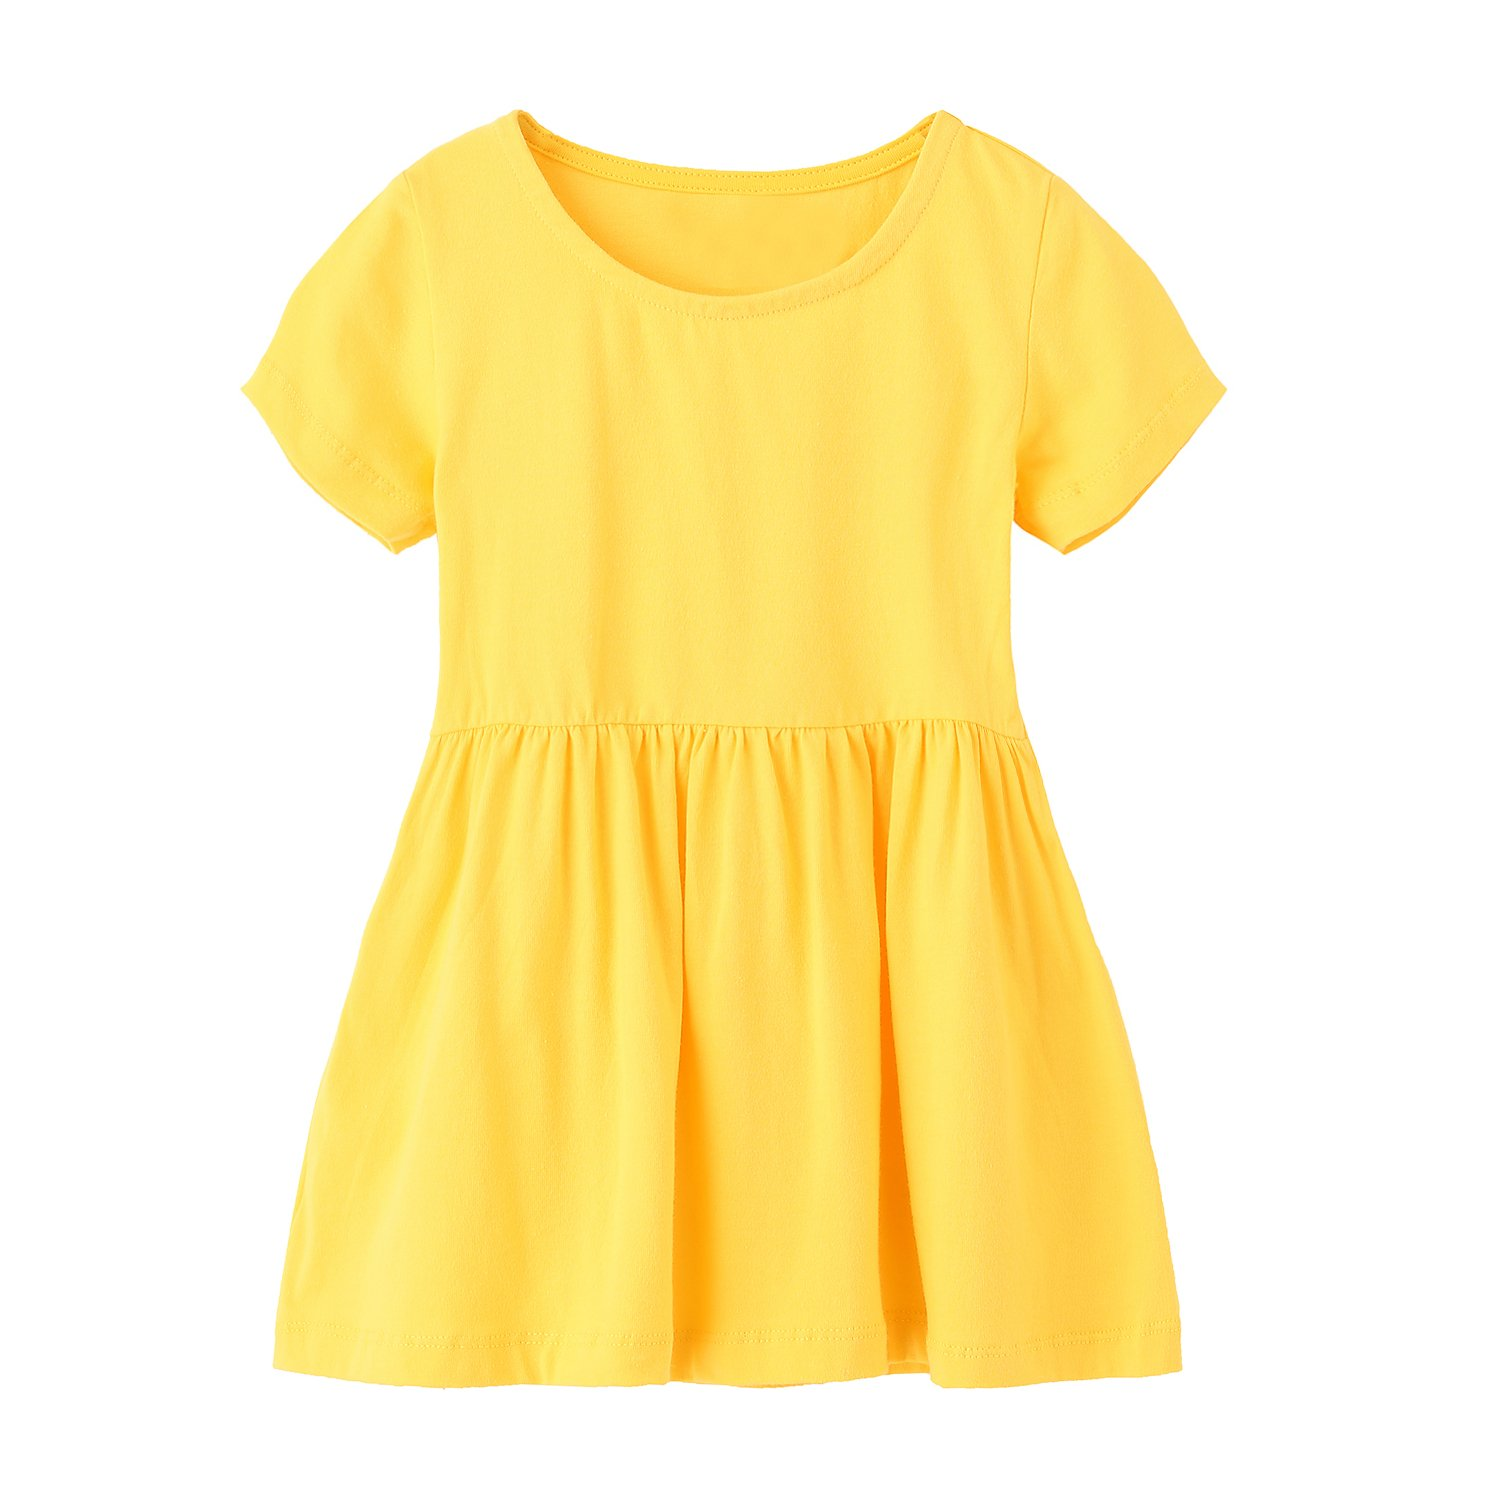 HowJoJo Girls Summer Cotton Dresses Short Sleeve Casual Dress for Girls Yellow 4T